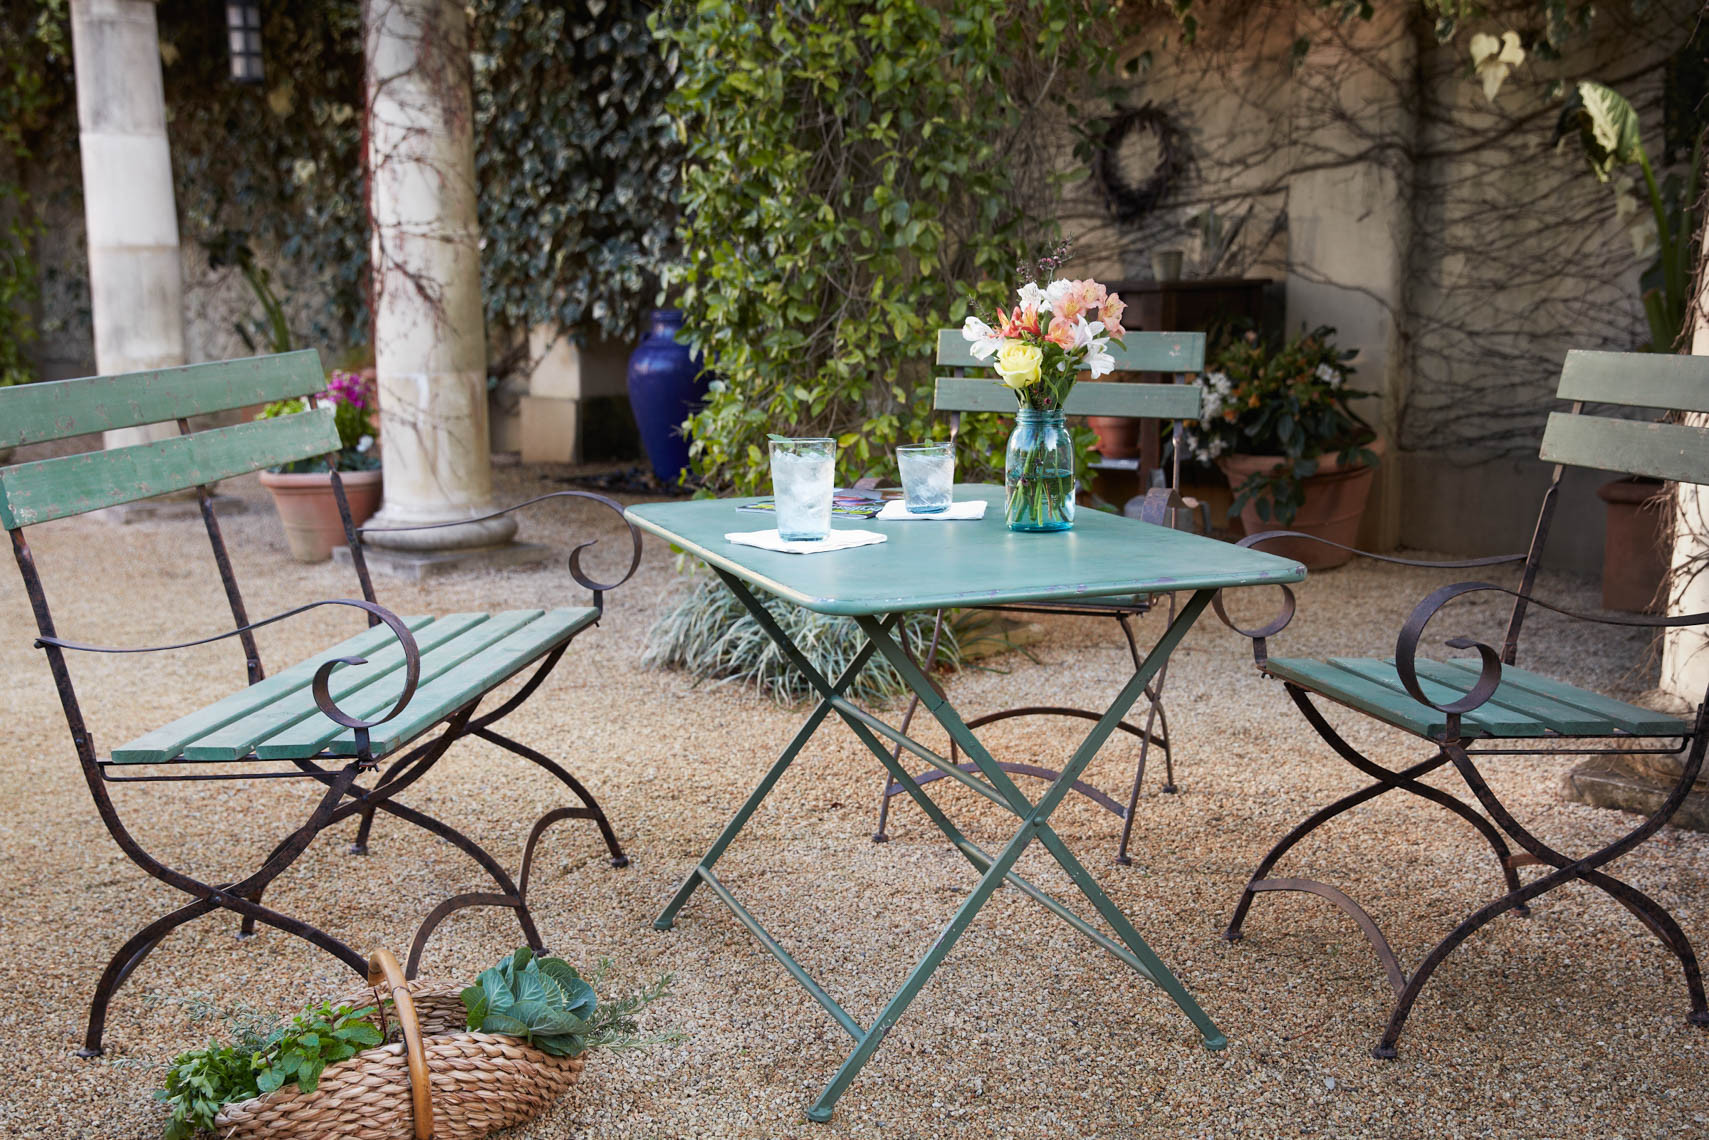 Green bistro furniture breakfast setting on pea gravel in yard San Francisco lifestyle photographer